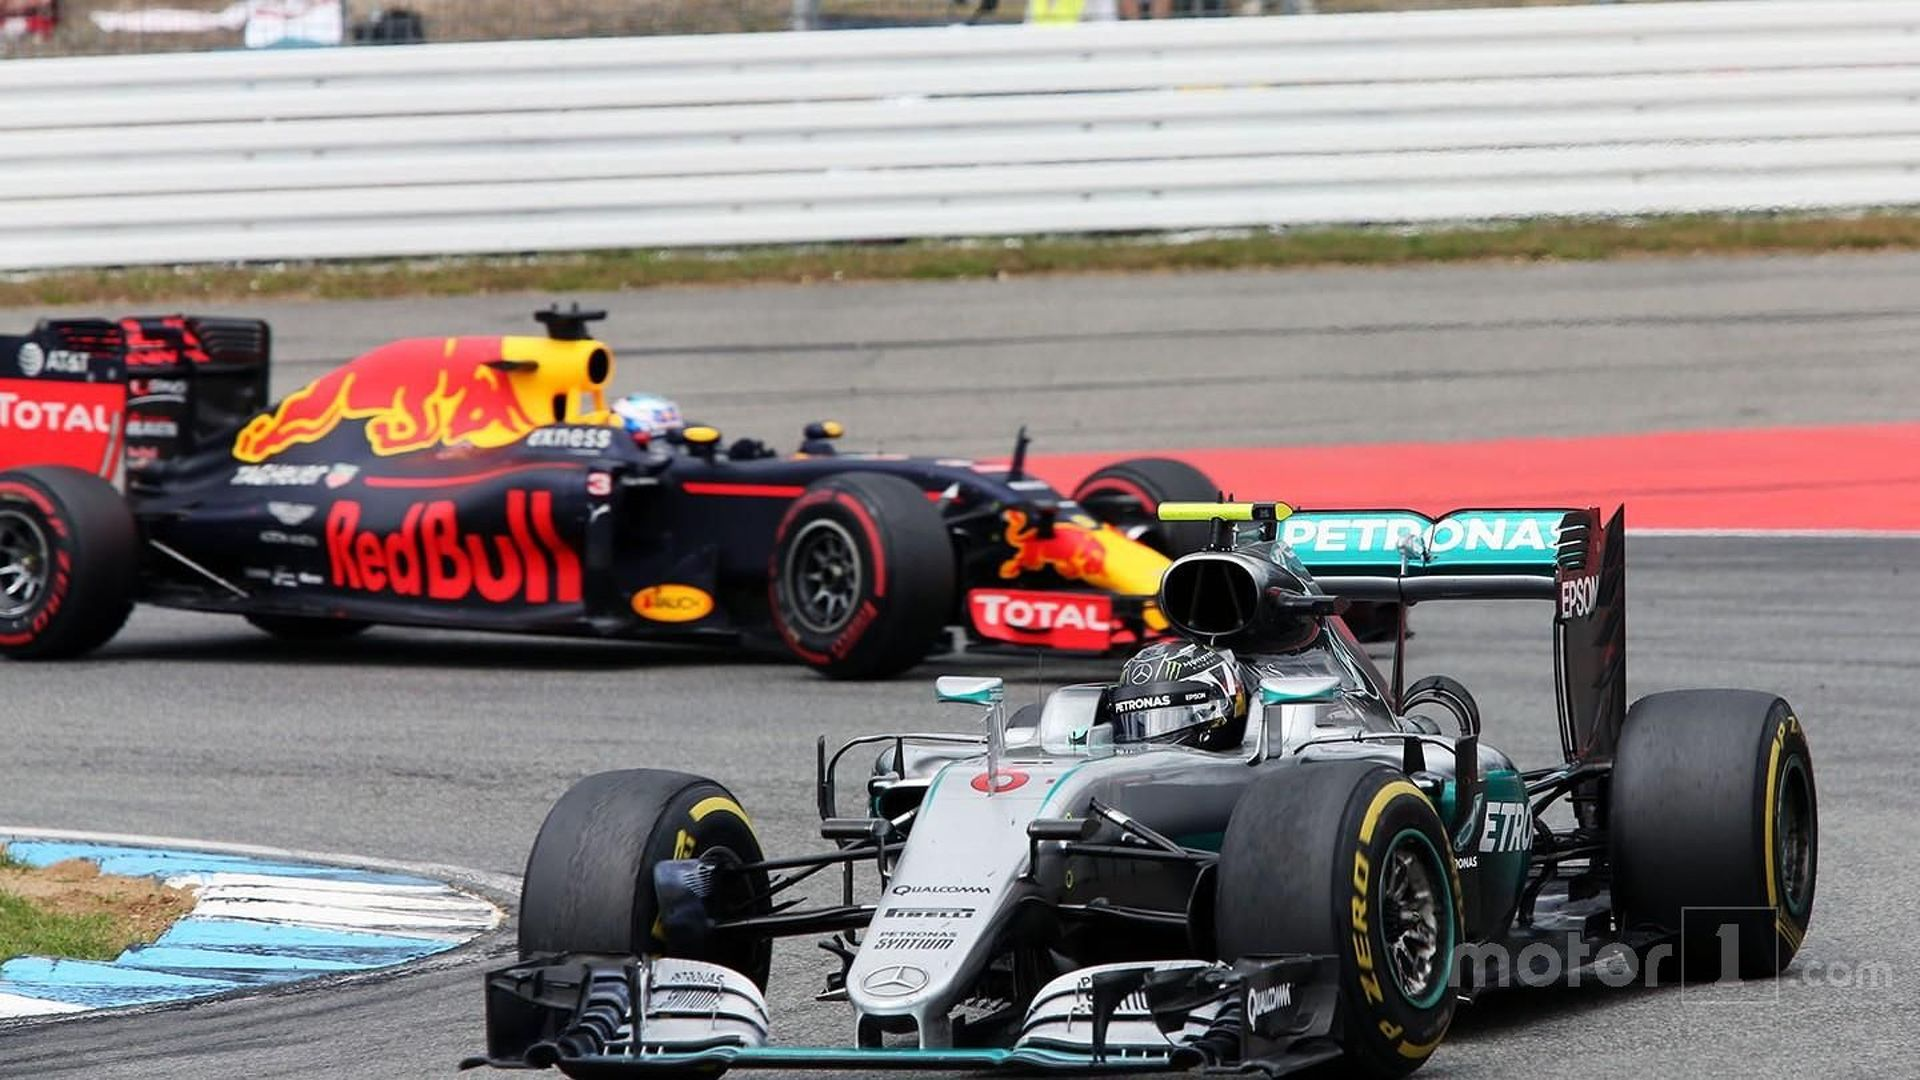 Stopwatch failure caused Rosberg's pit delay